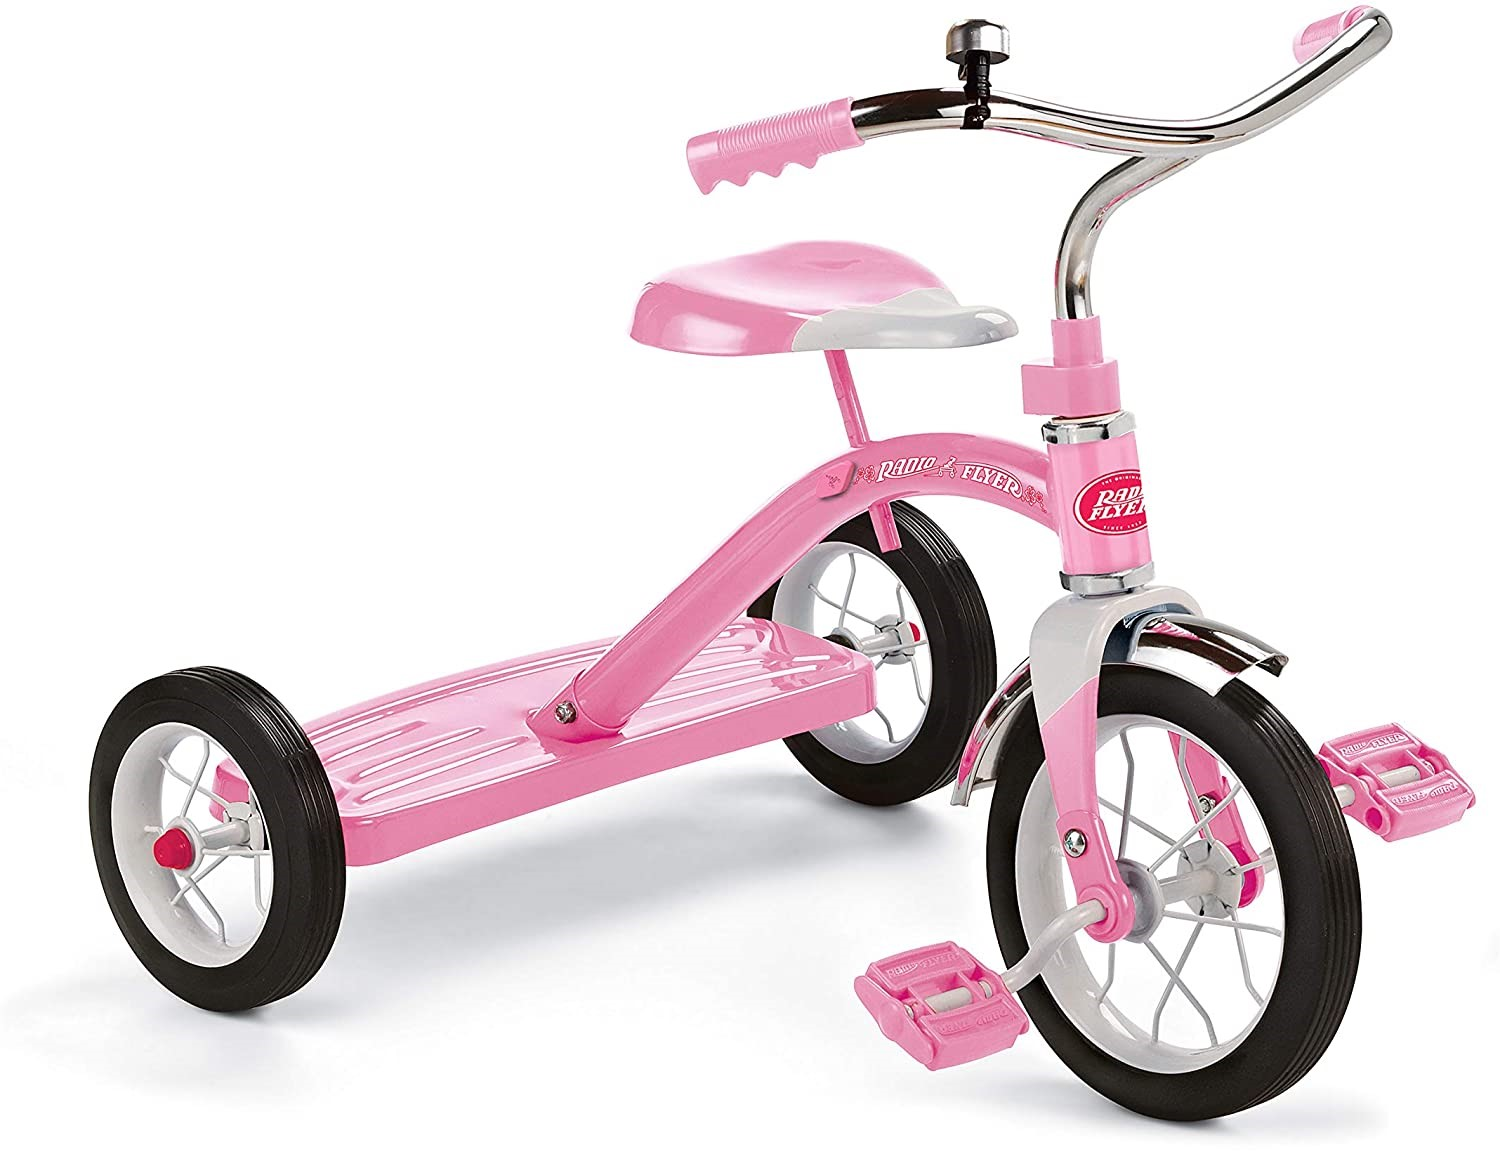 Radio Flyer Classic Pink Tricycle Review.